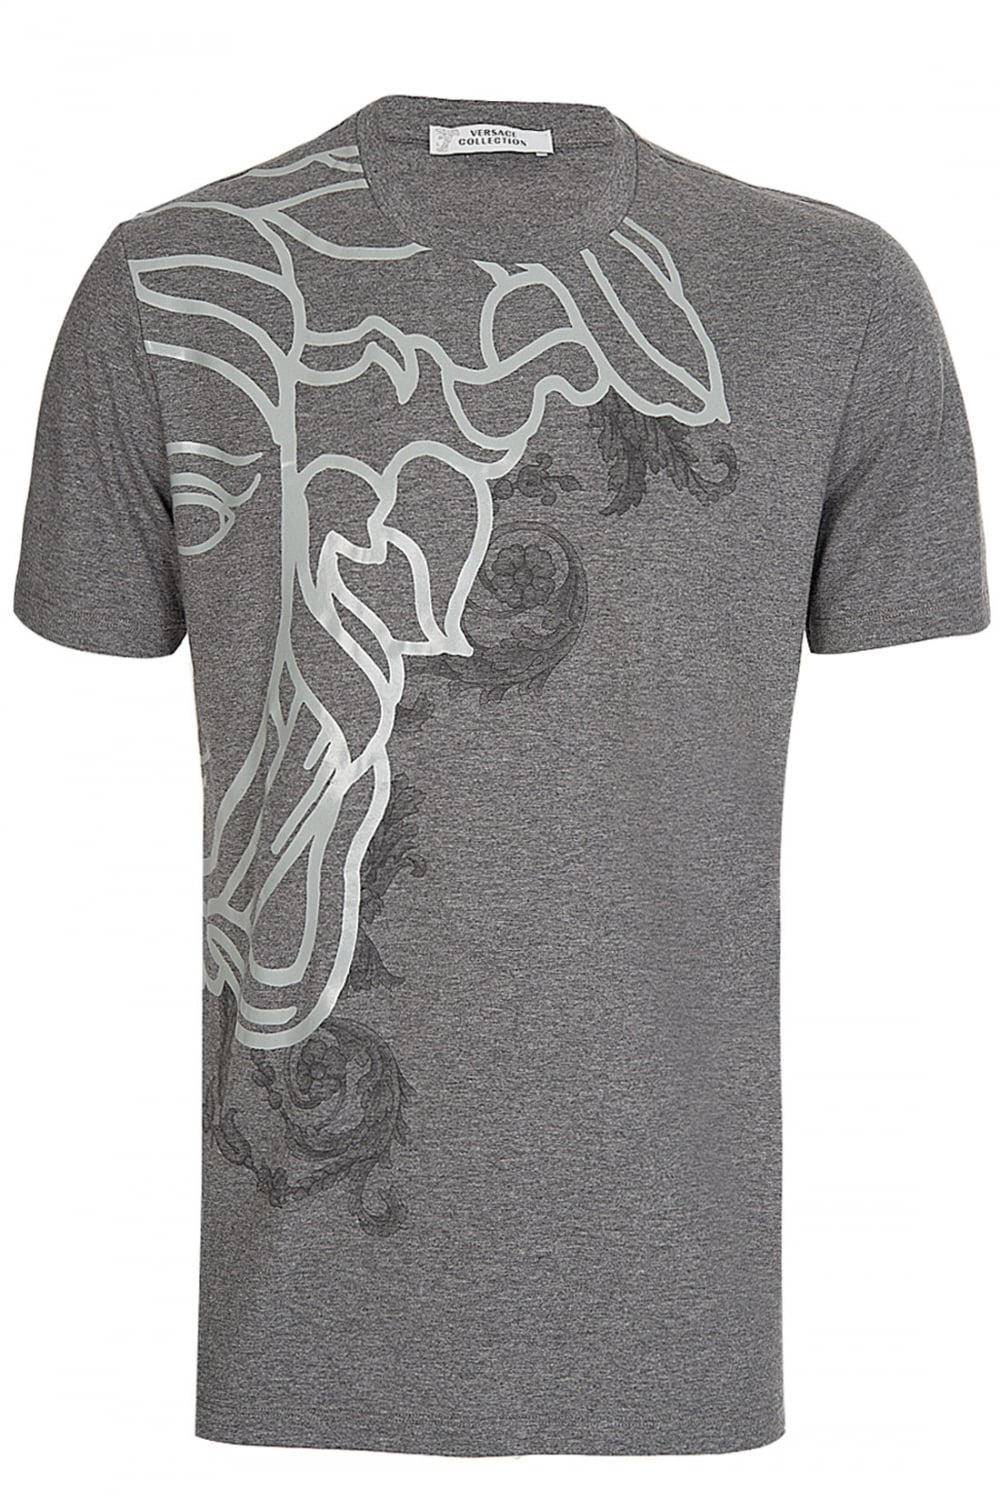 bf0f3b49 VERSACE Versace Collection Medusa Print T-Shirt Grey - Clothing from ...